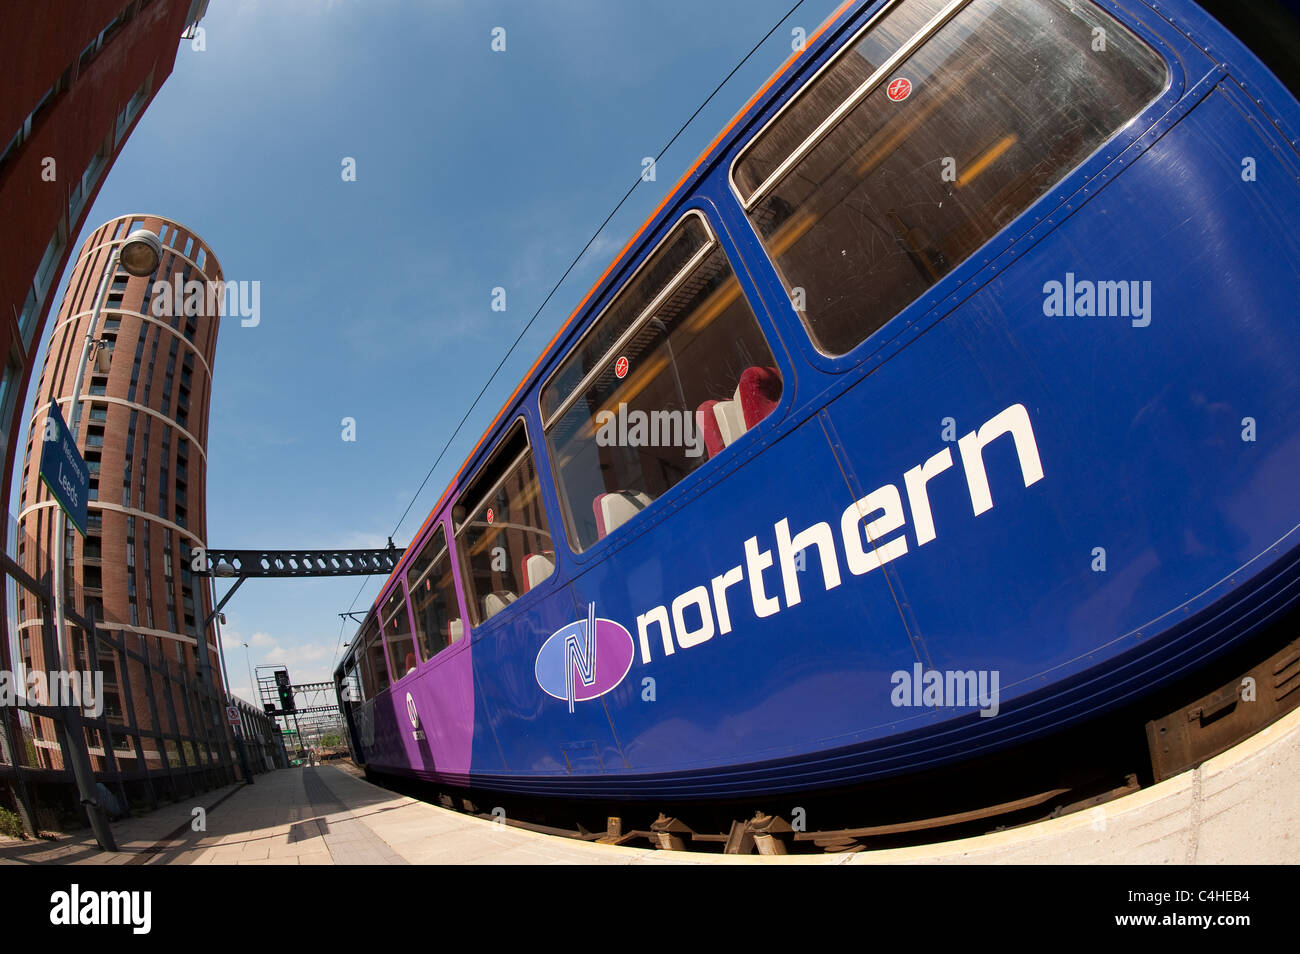 Class 144 pacer train in Northern Rail livery at a railway station in England. - Stock Image